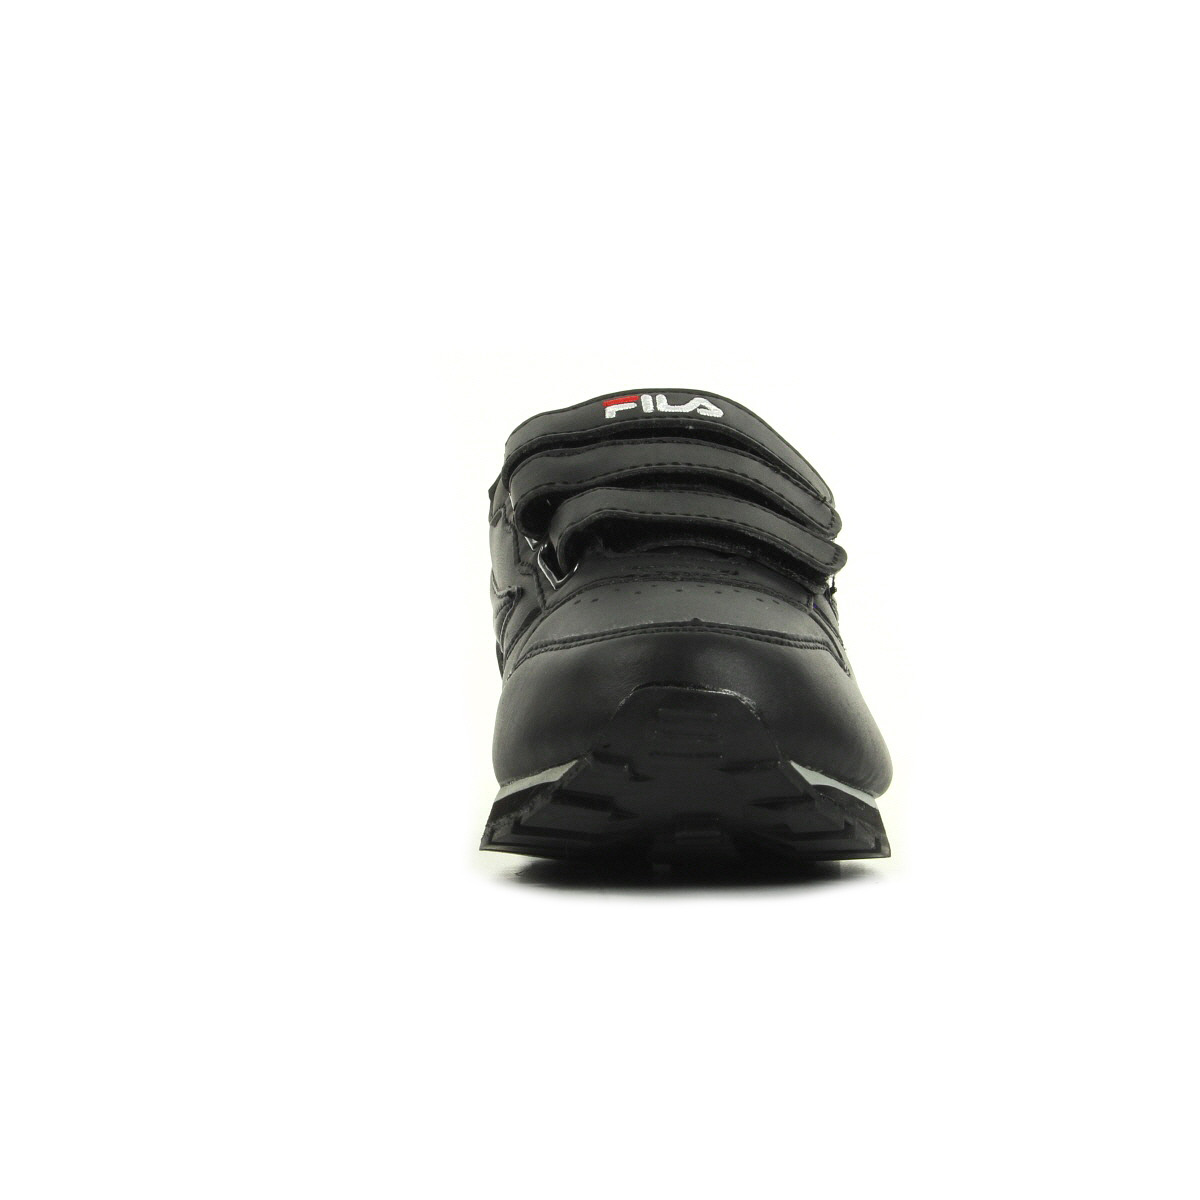 Fila Orbit Homme